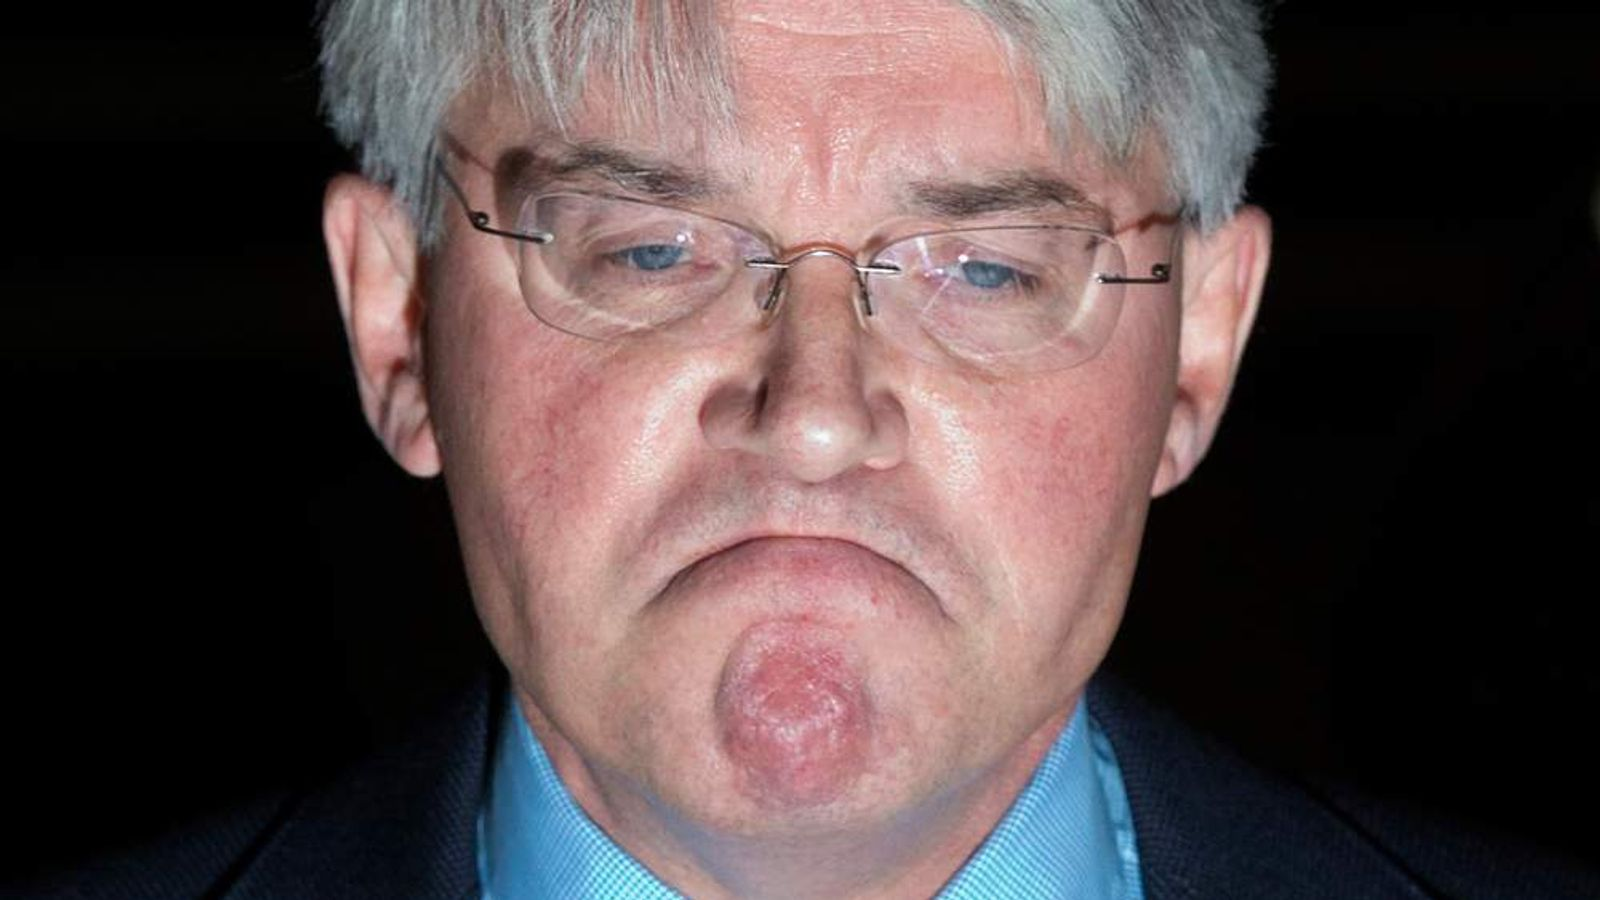 Andrew Mitchell talks to the media after losing libel case